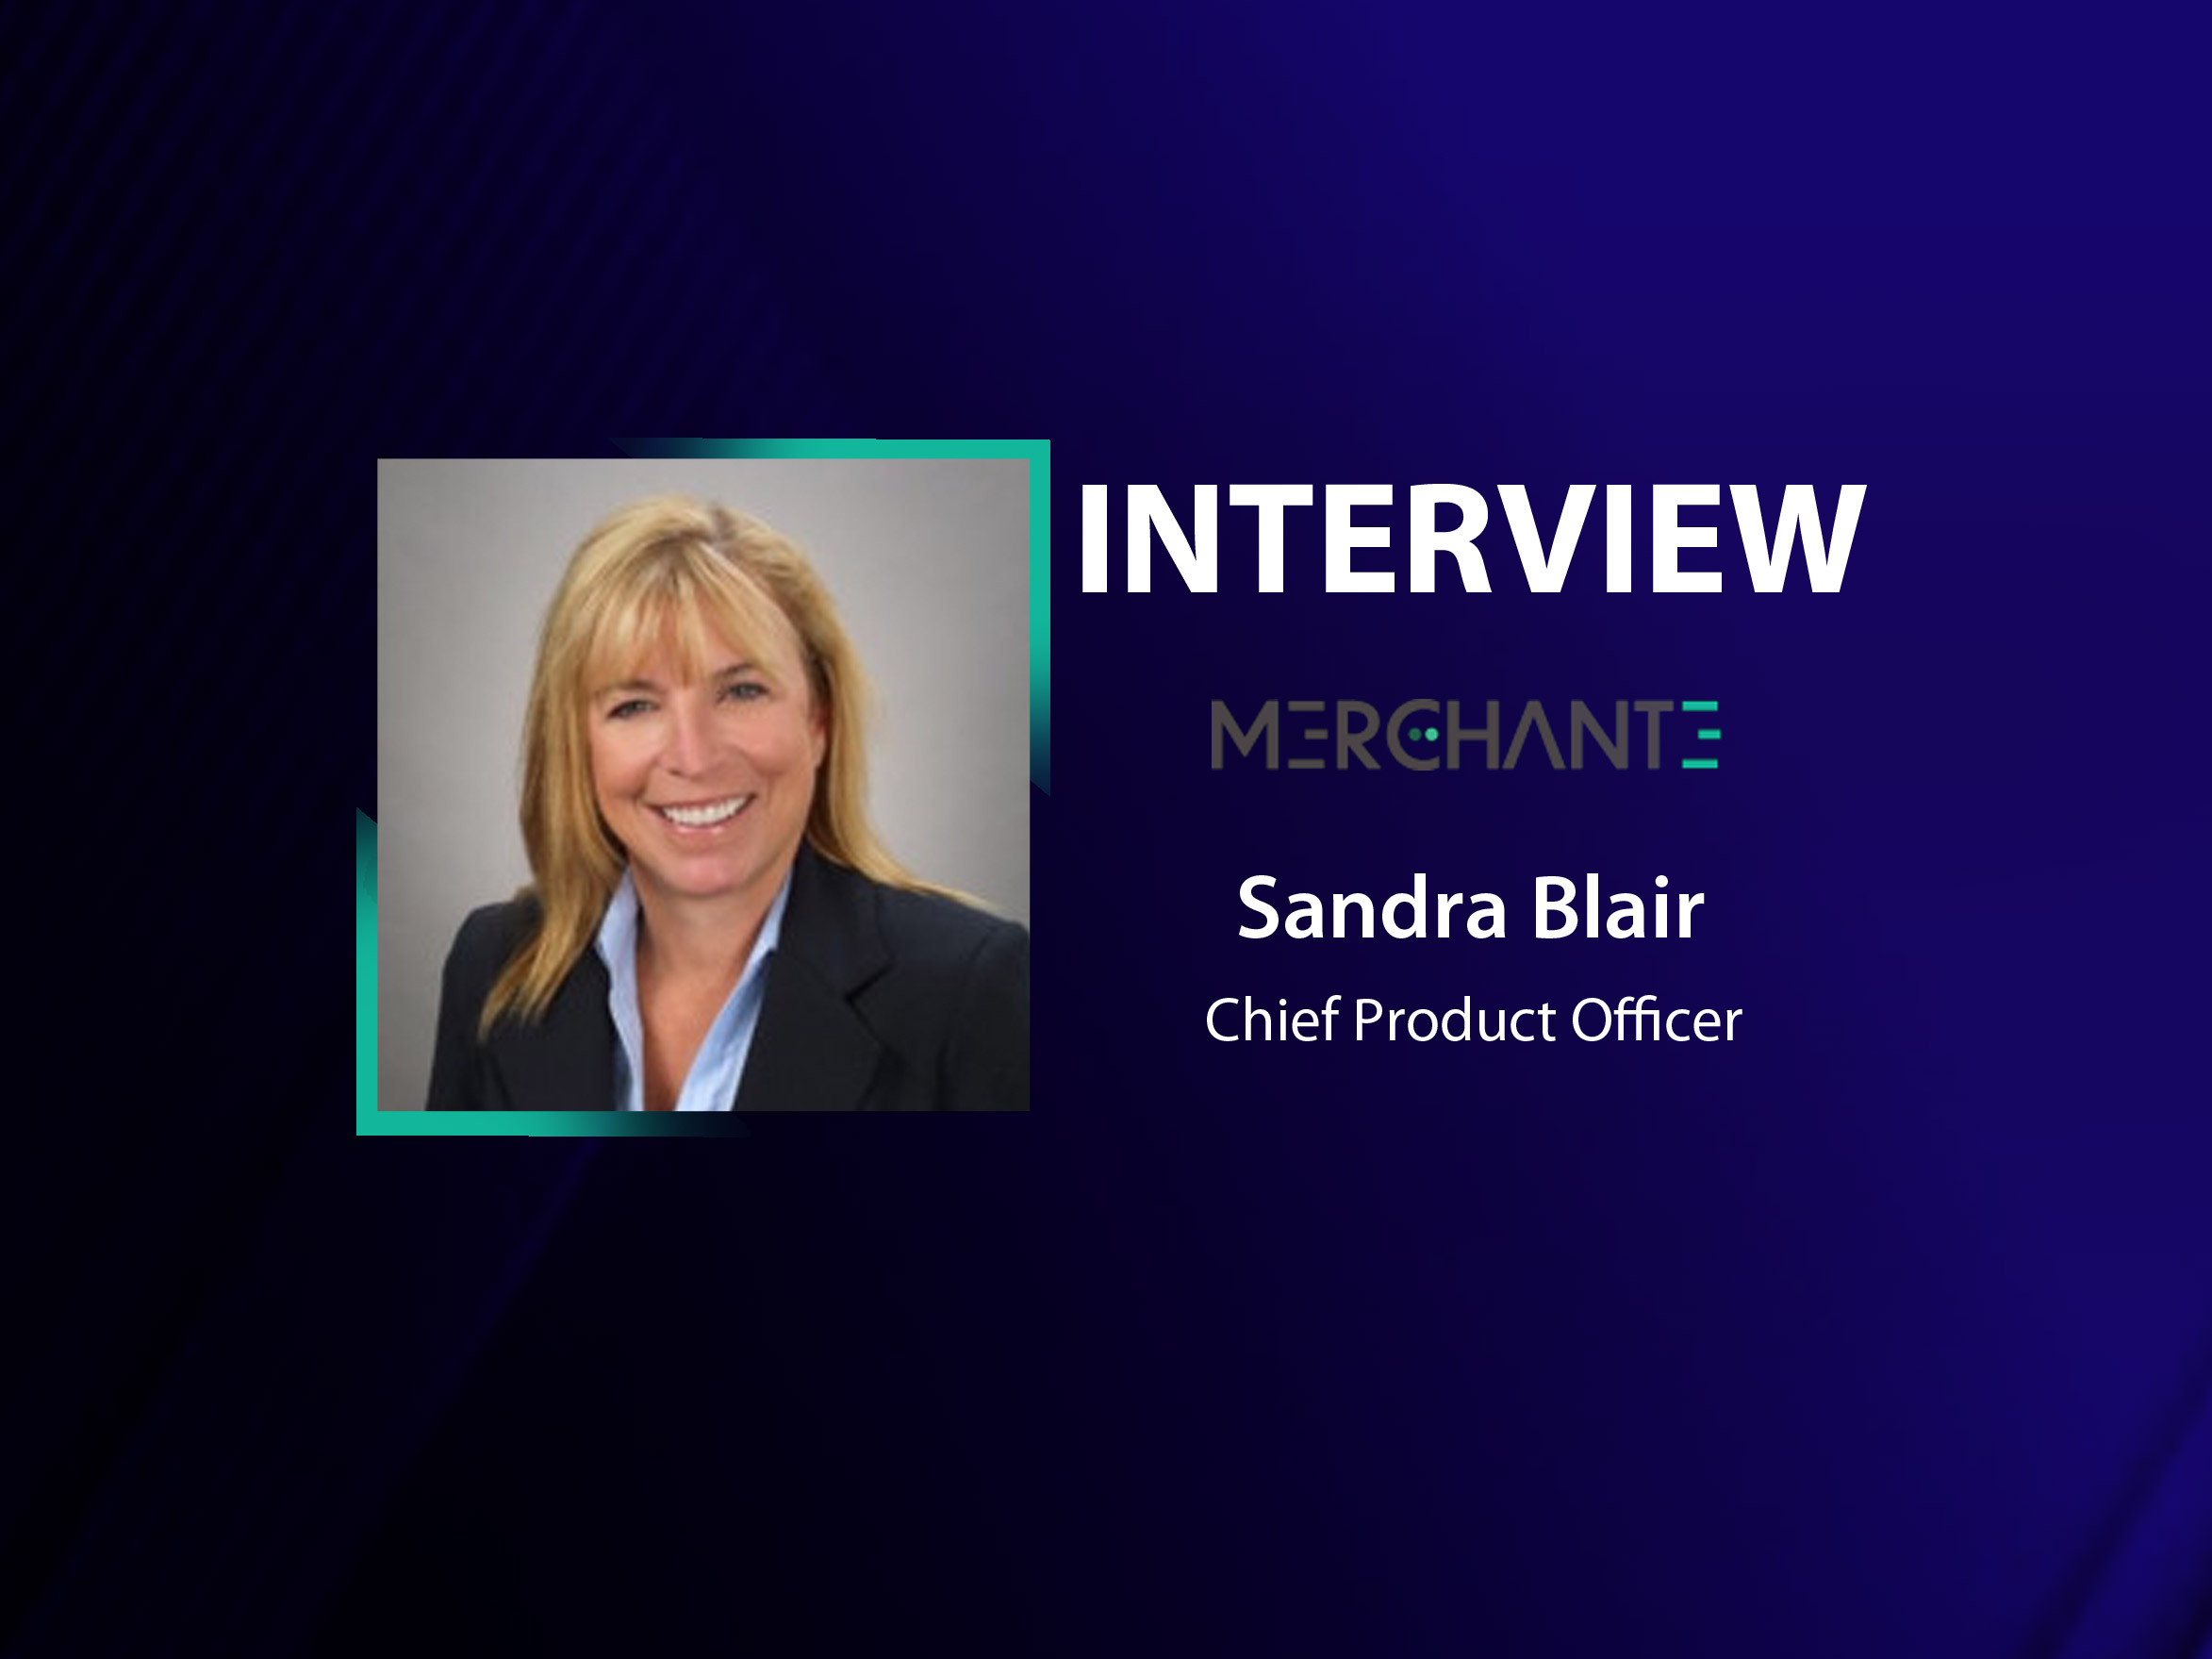 GlobalFintechSeries Interview with Sandra Blair, Chief Product Officer at MerchantE